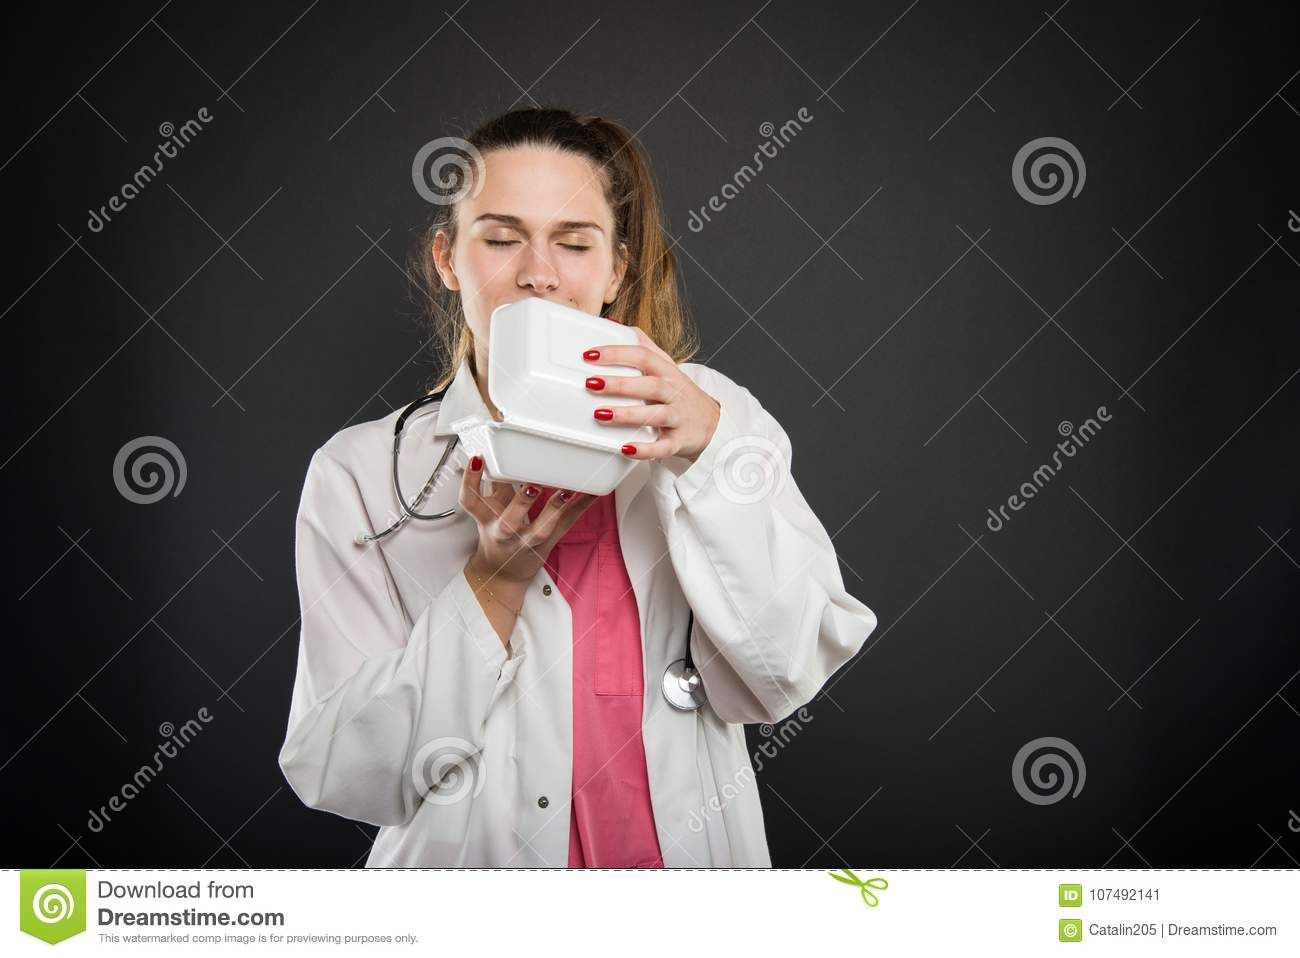 Female Young Doctor Smelling Lunch Box Stock Image - Image